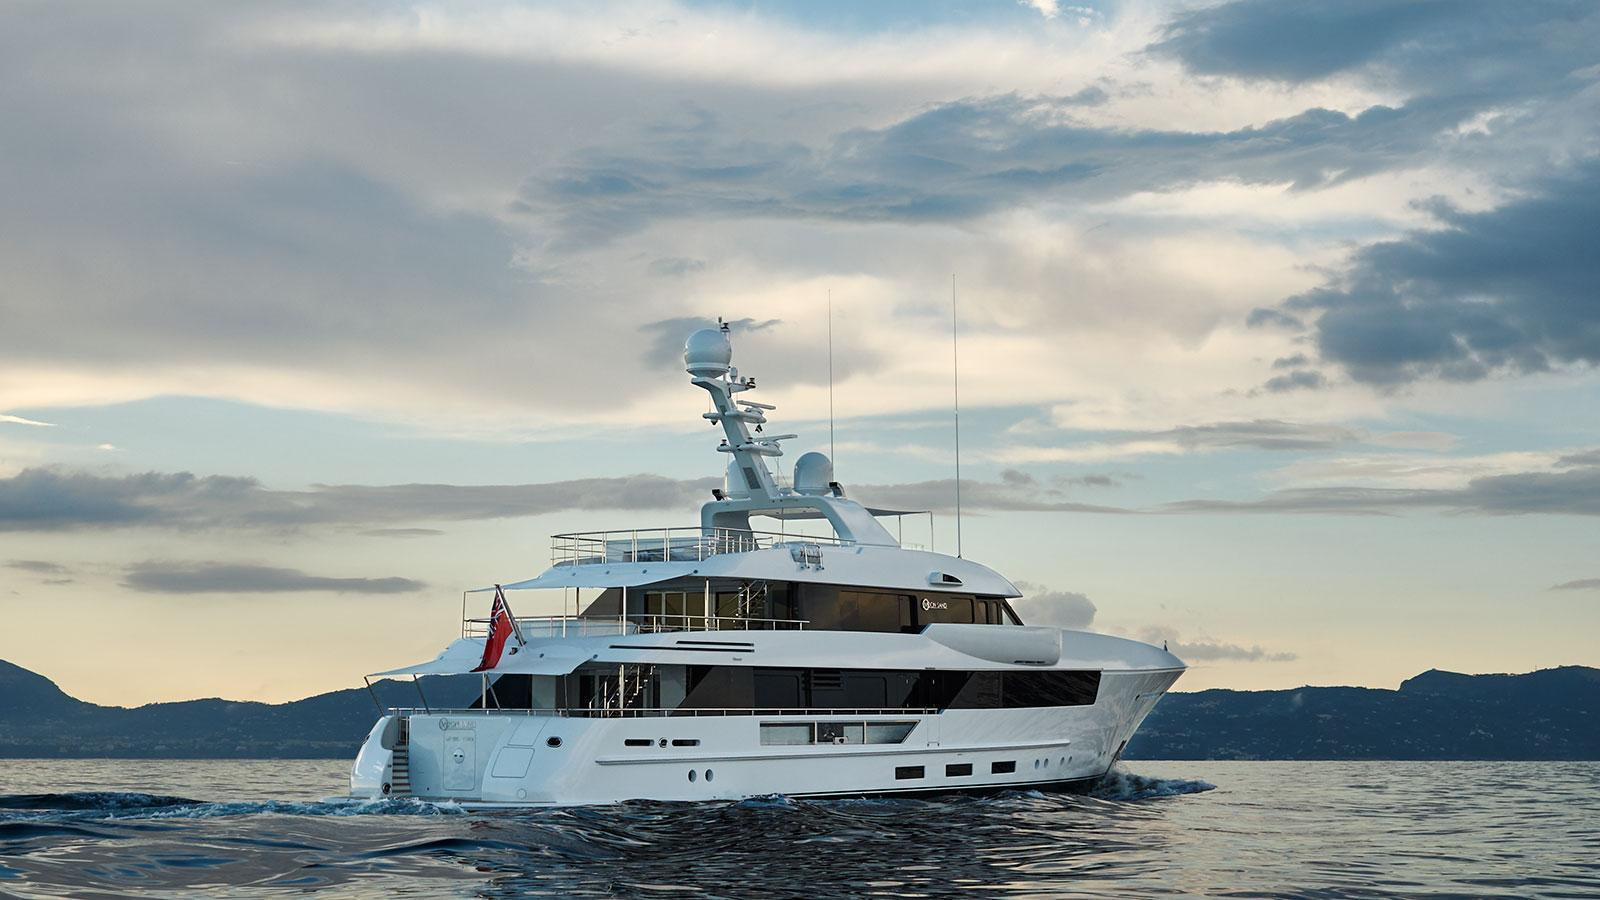 moon-sand-motor-yacht-feadship-2015-44m-profile-berth